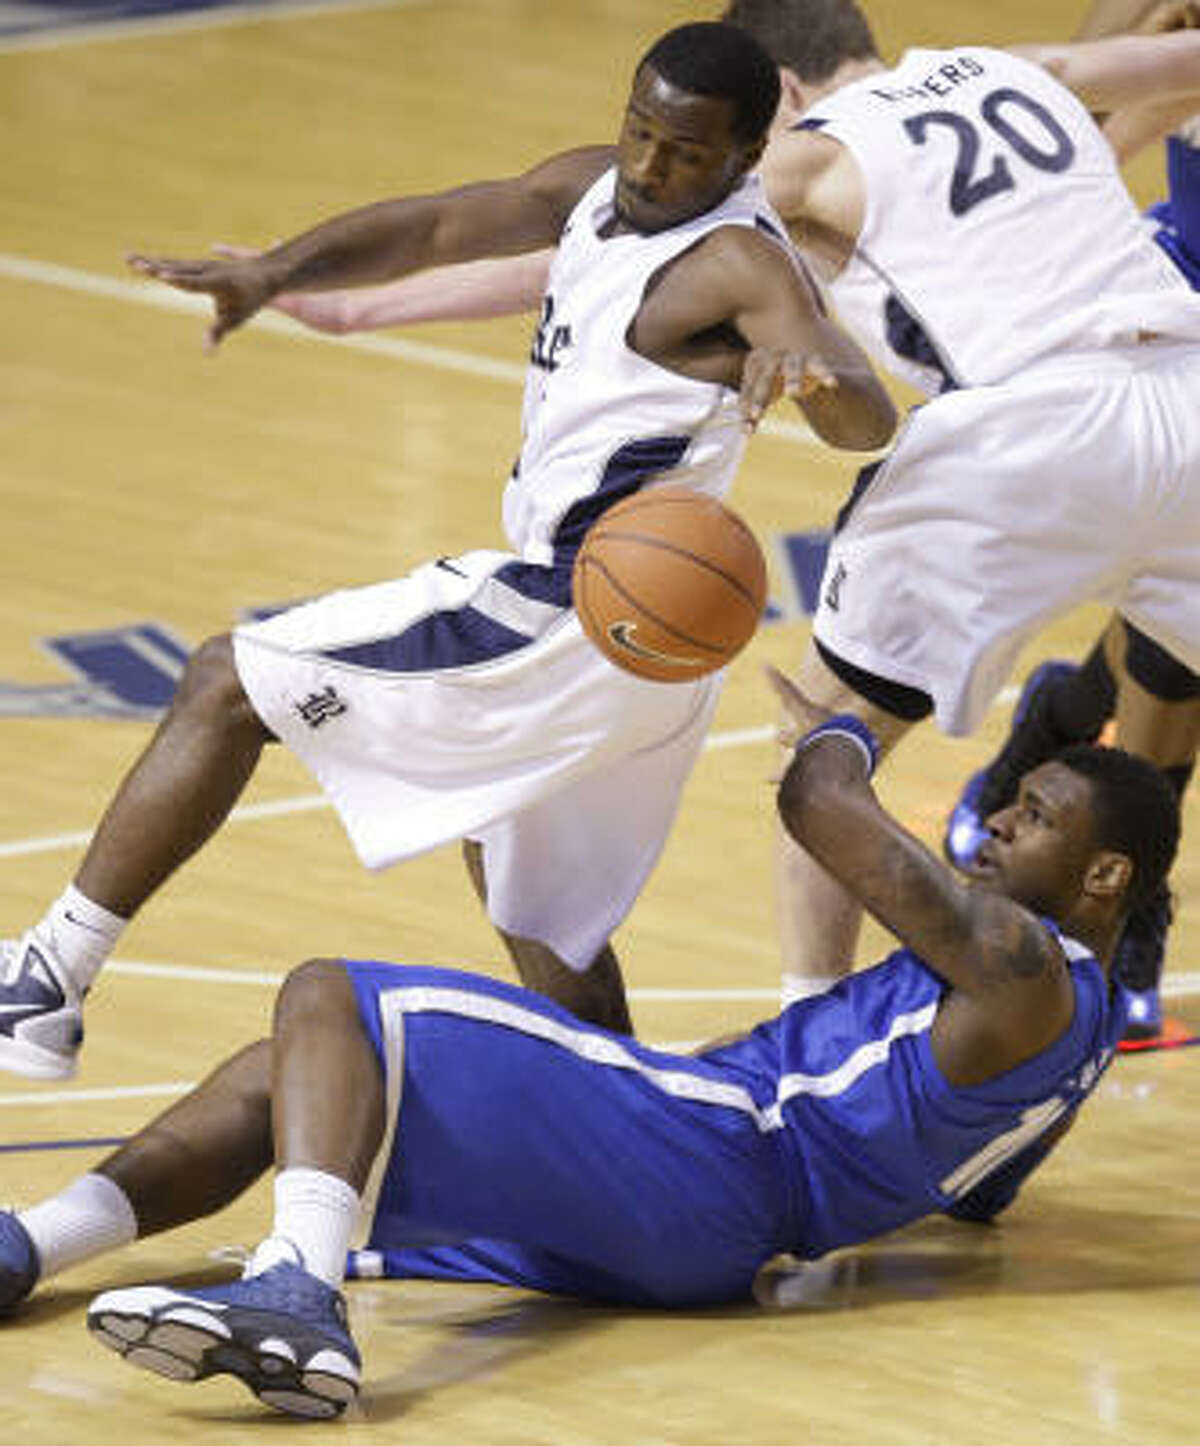 Rice's Bryan Beasley, left, and Lucas Kuipers (20) try to avoid stepping on Memphis' Tarik Black as they scramble for a loose ball during the first half.